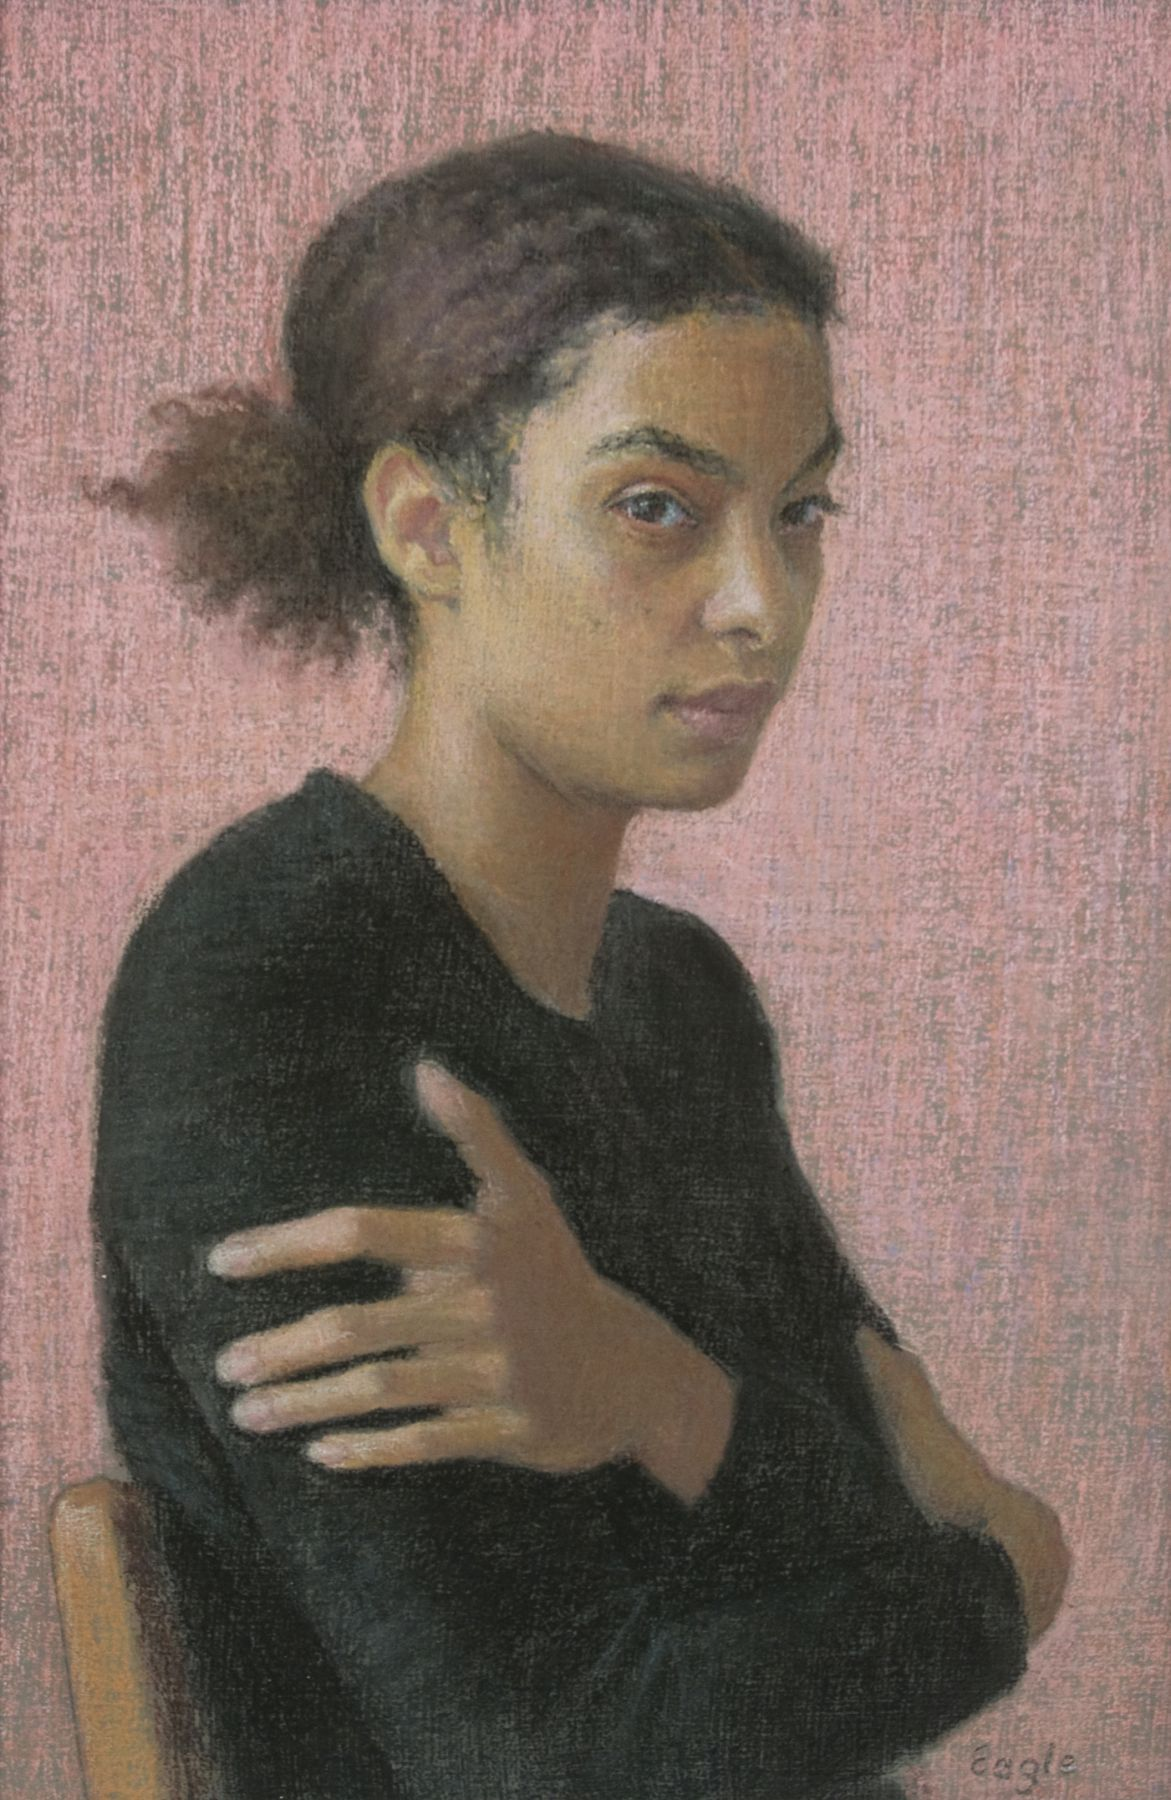 Ellen Eagle, Pigeon Glancing, 2011, pastel on pumice board, 9 11/16 x 6 3/8 inches